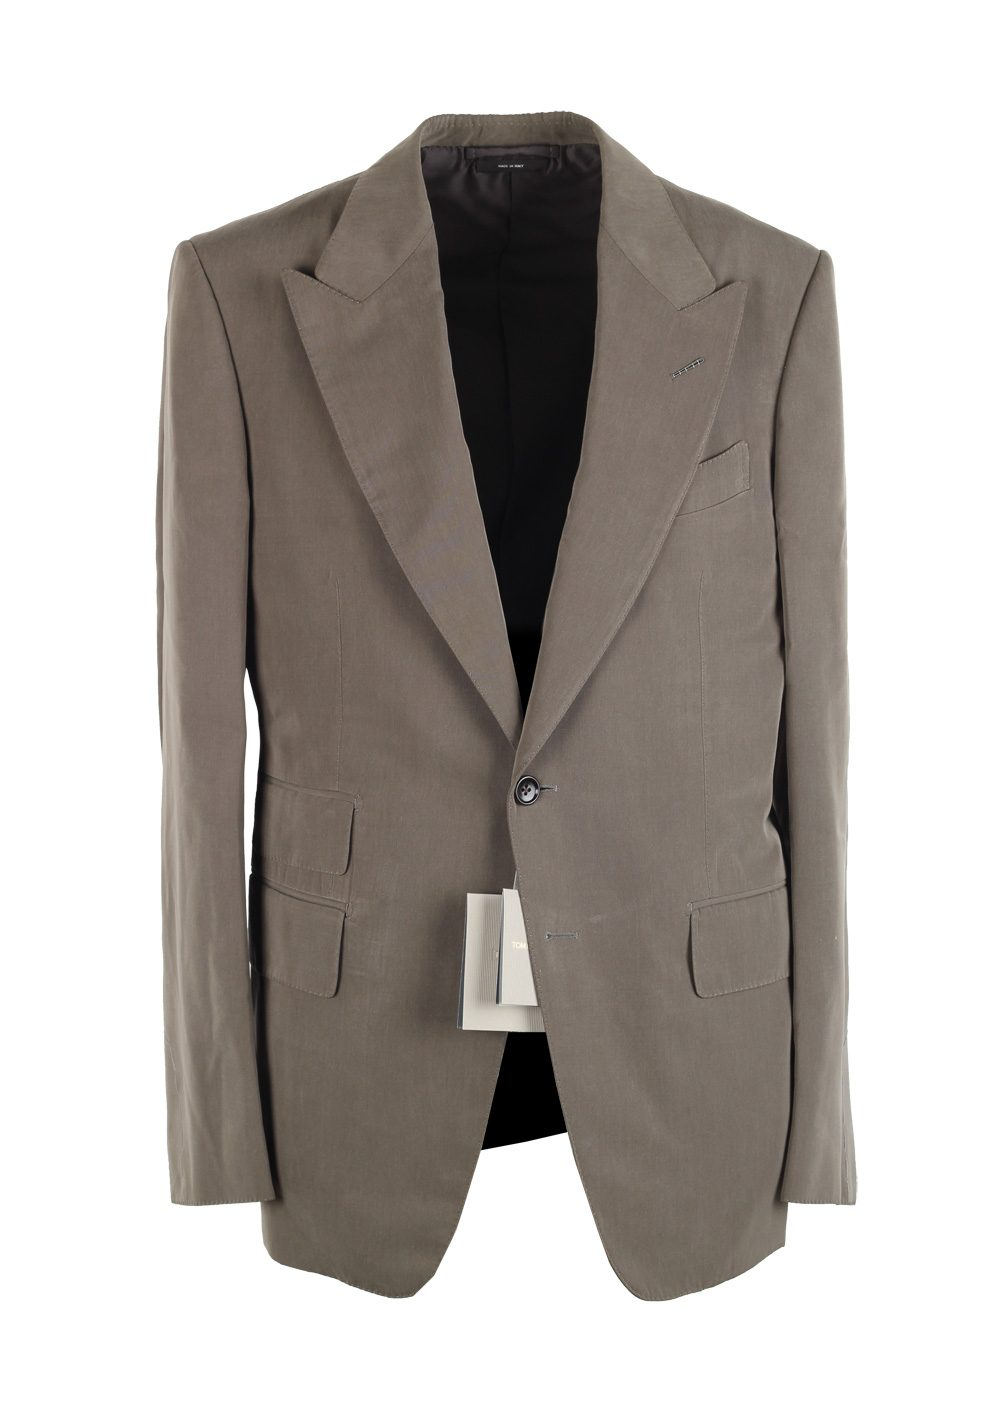 TOM FORD Shelton Gray Suit Size 48 / 38R U.S. In Silk   Costume Limité